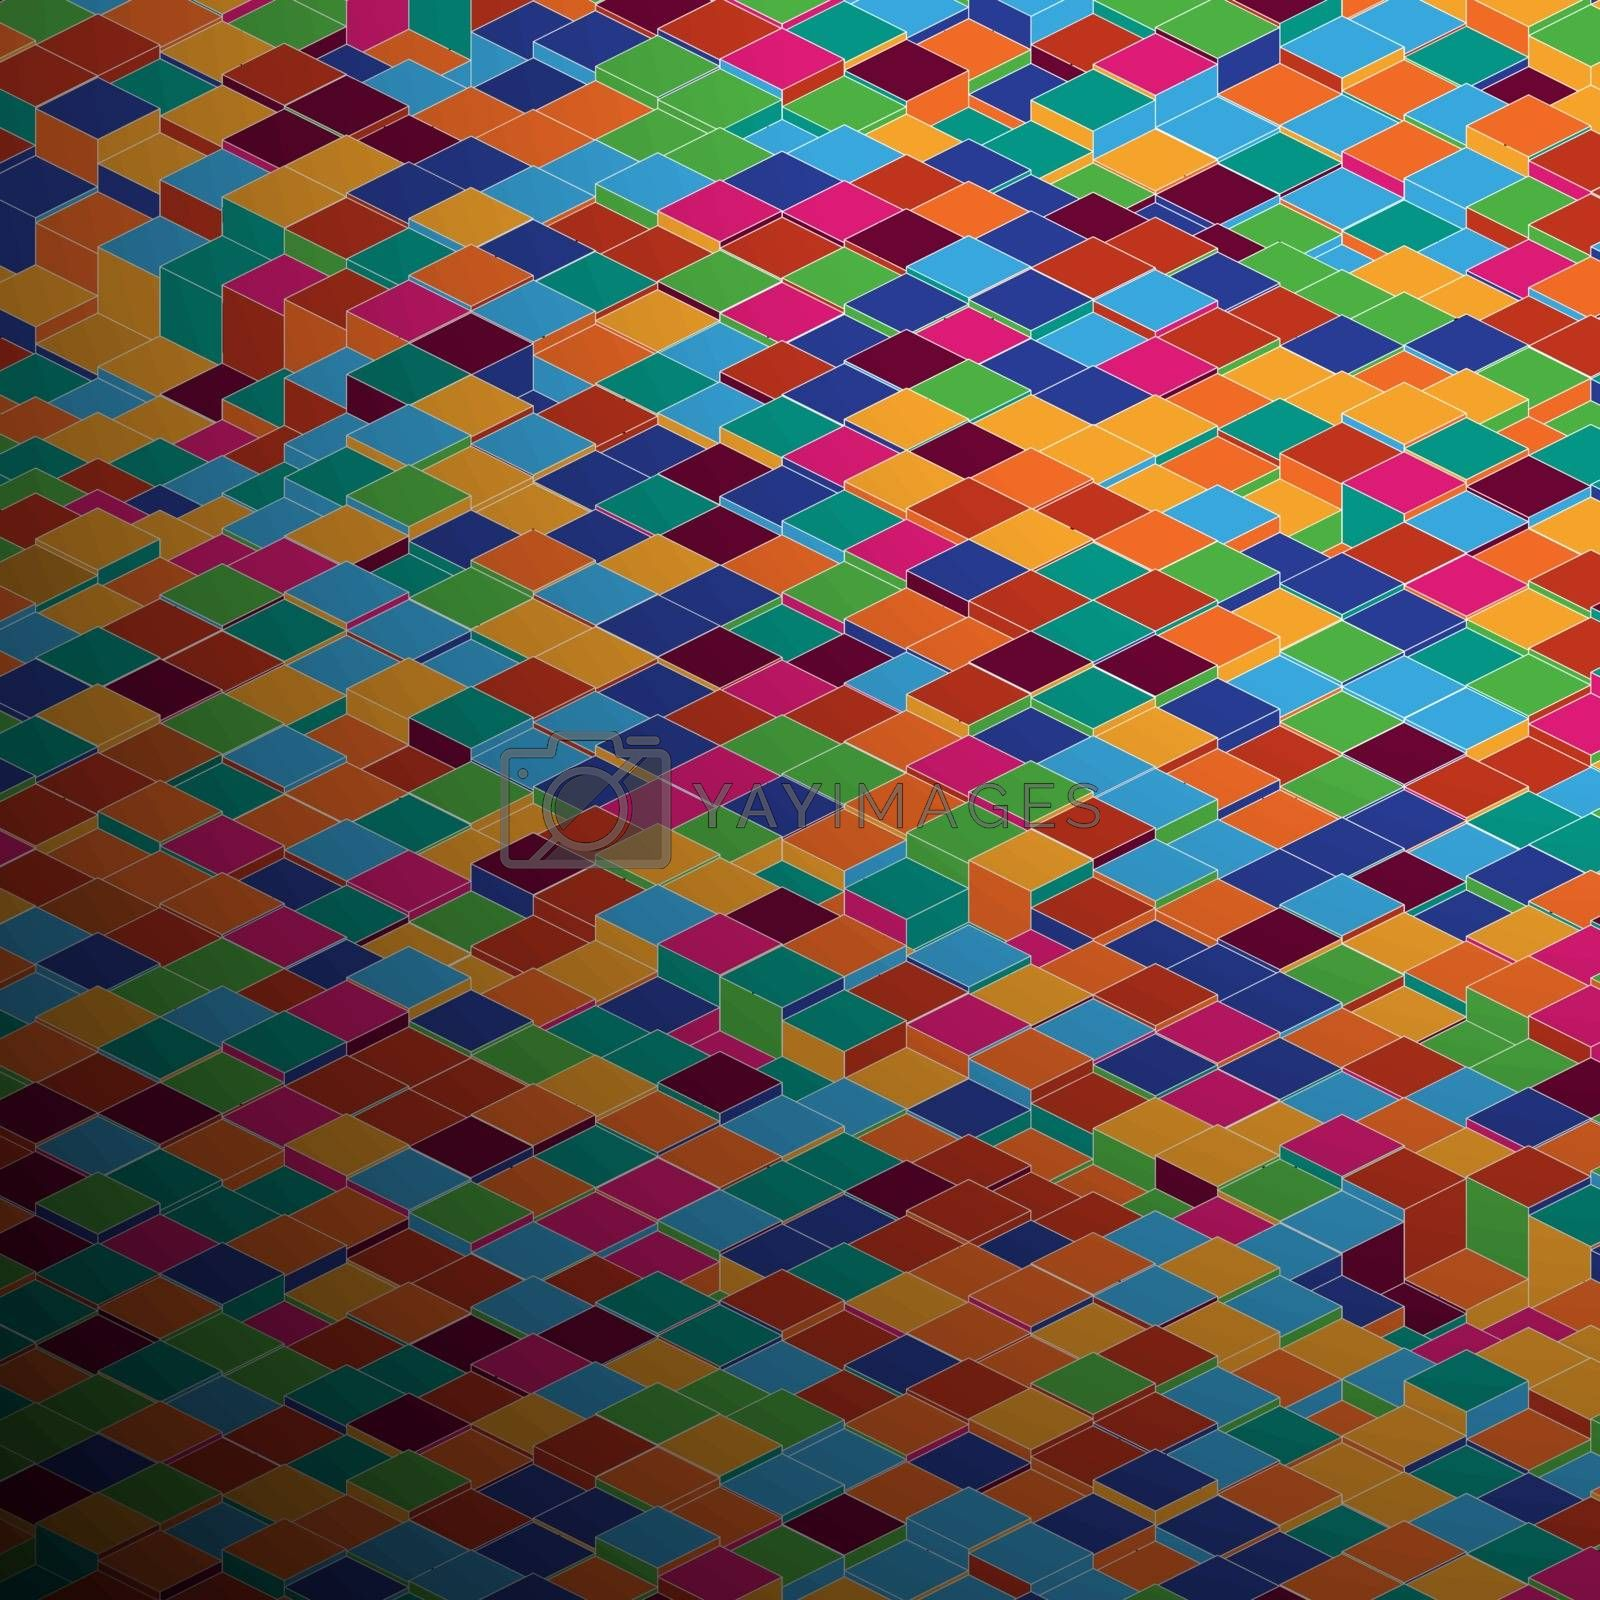 Abstract square pixel mosaic background. EPS 8 vector file included